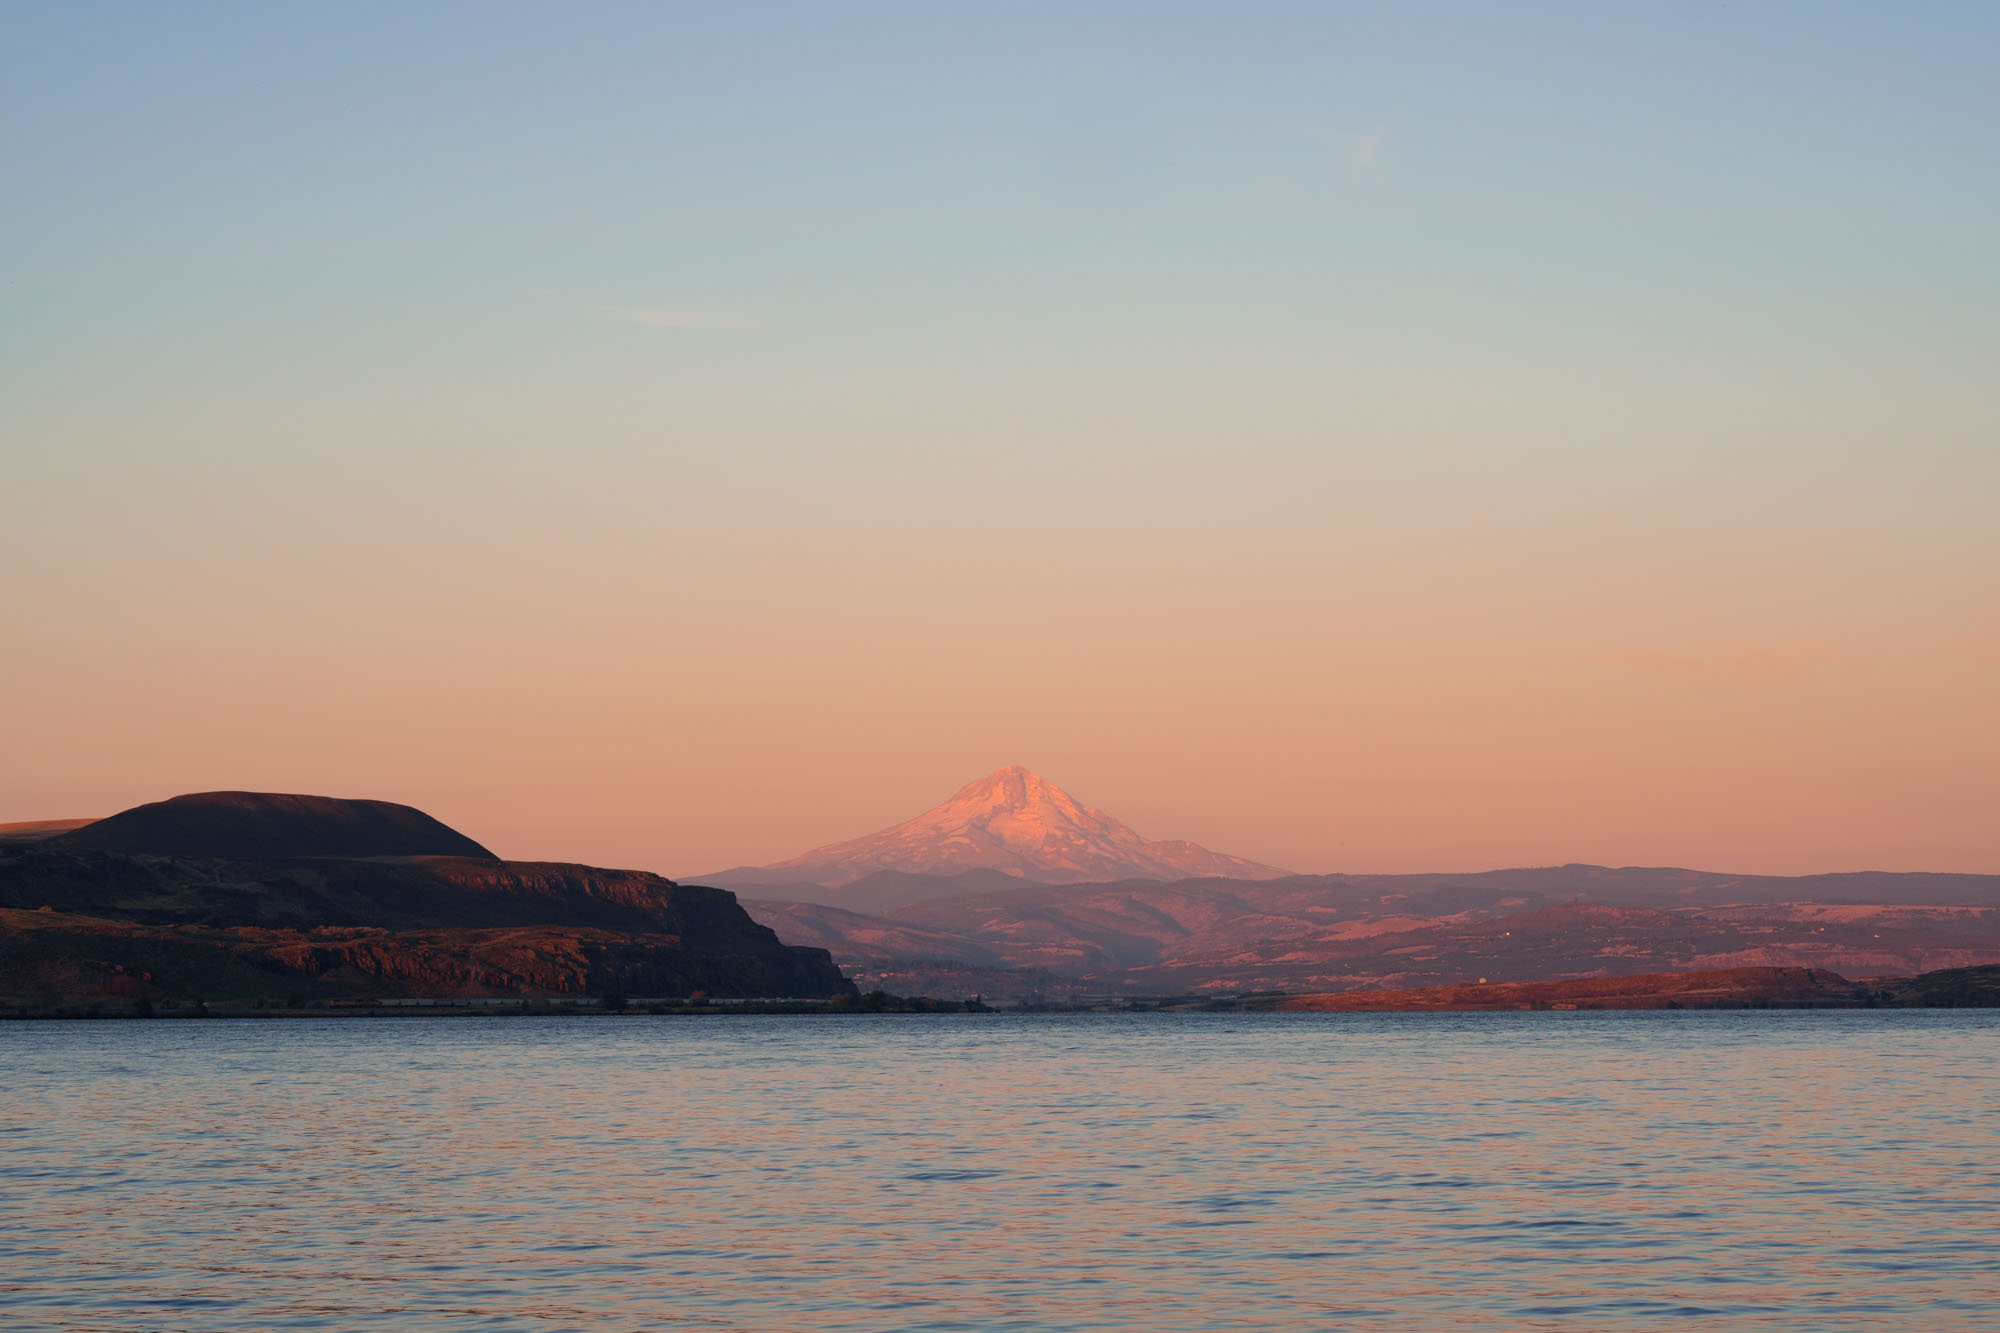 View from our site in the Columbia River Gorge